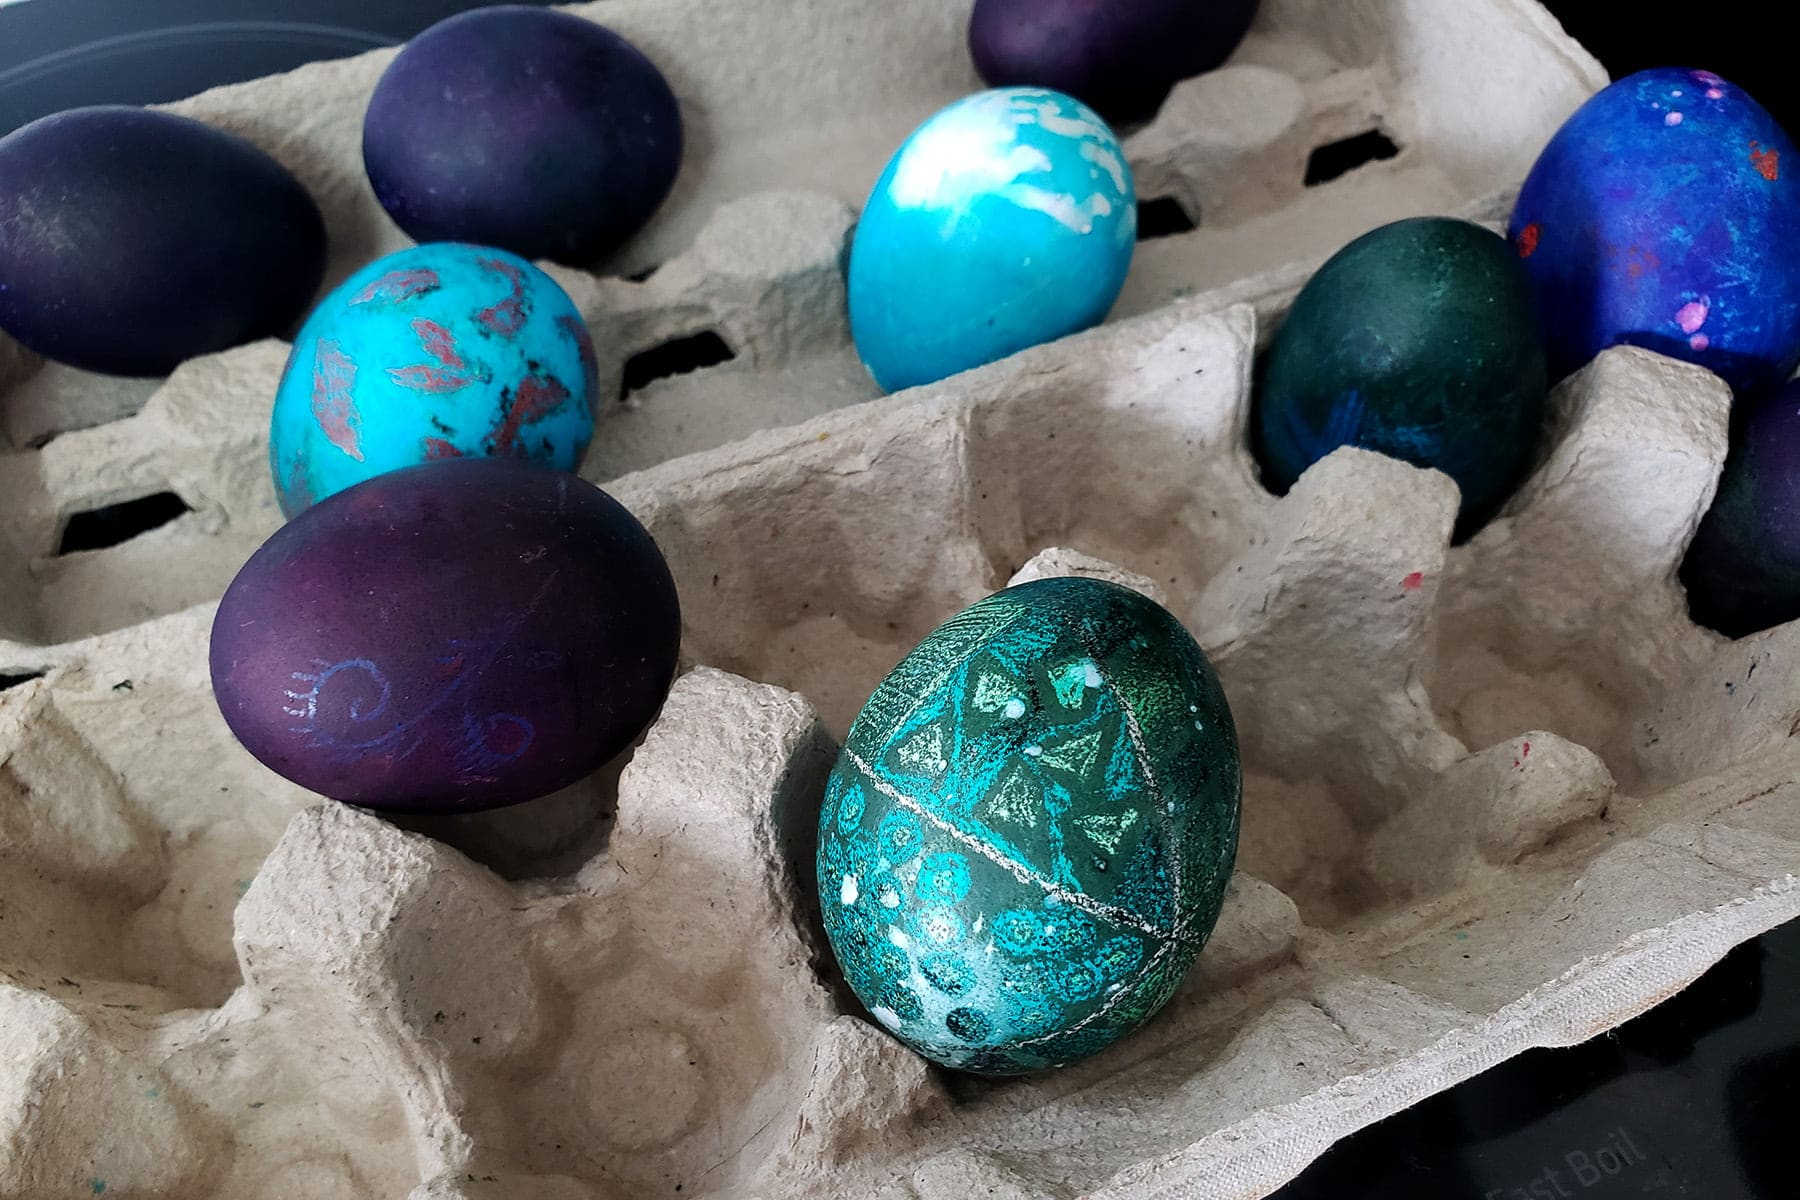 A carton of eggs has several dyed eggs in it. There are blotches of white on them.